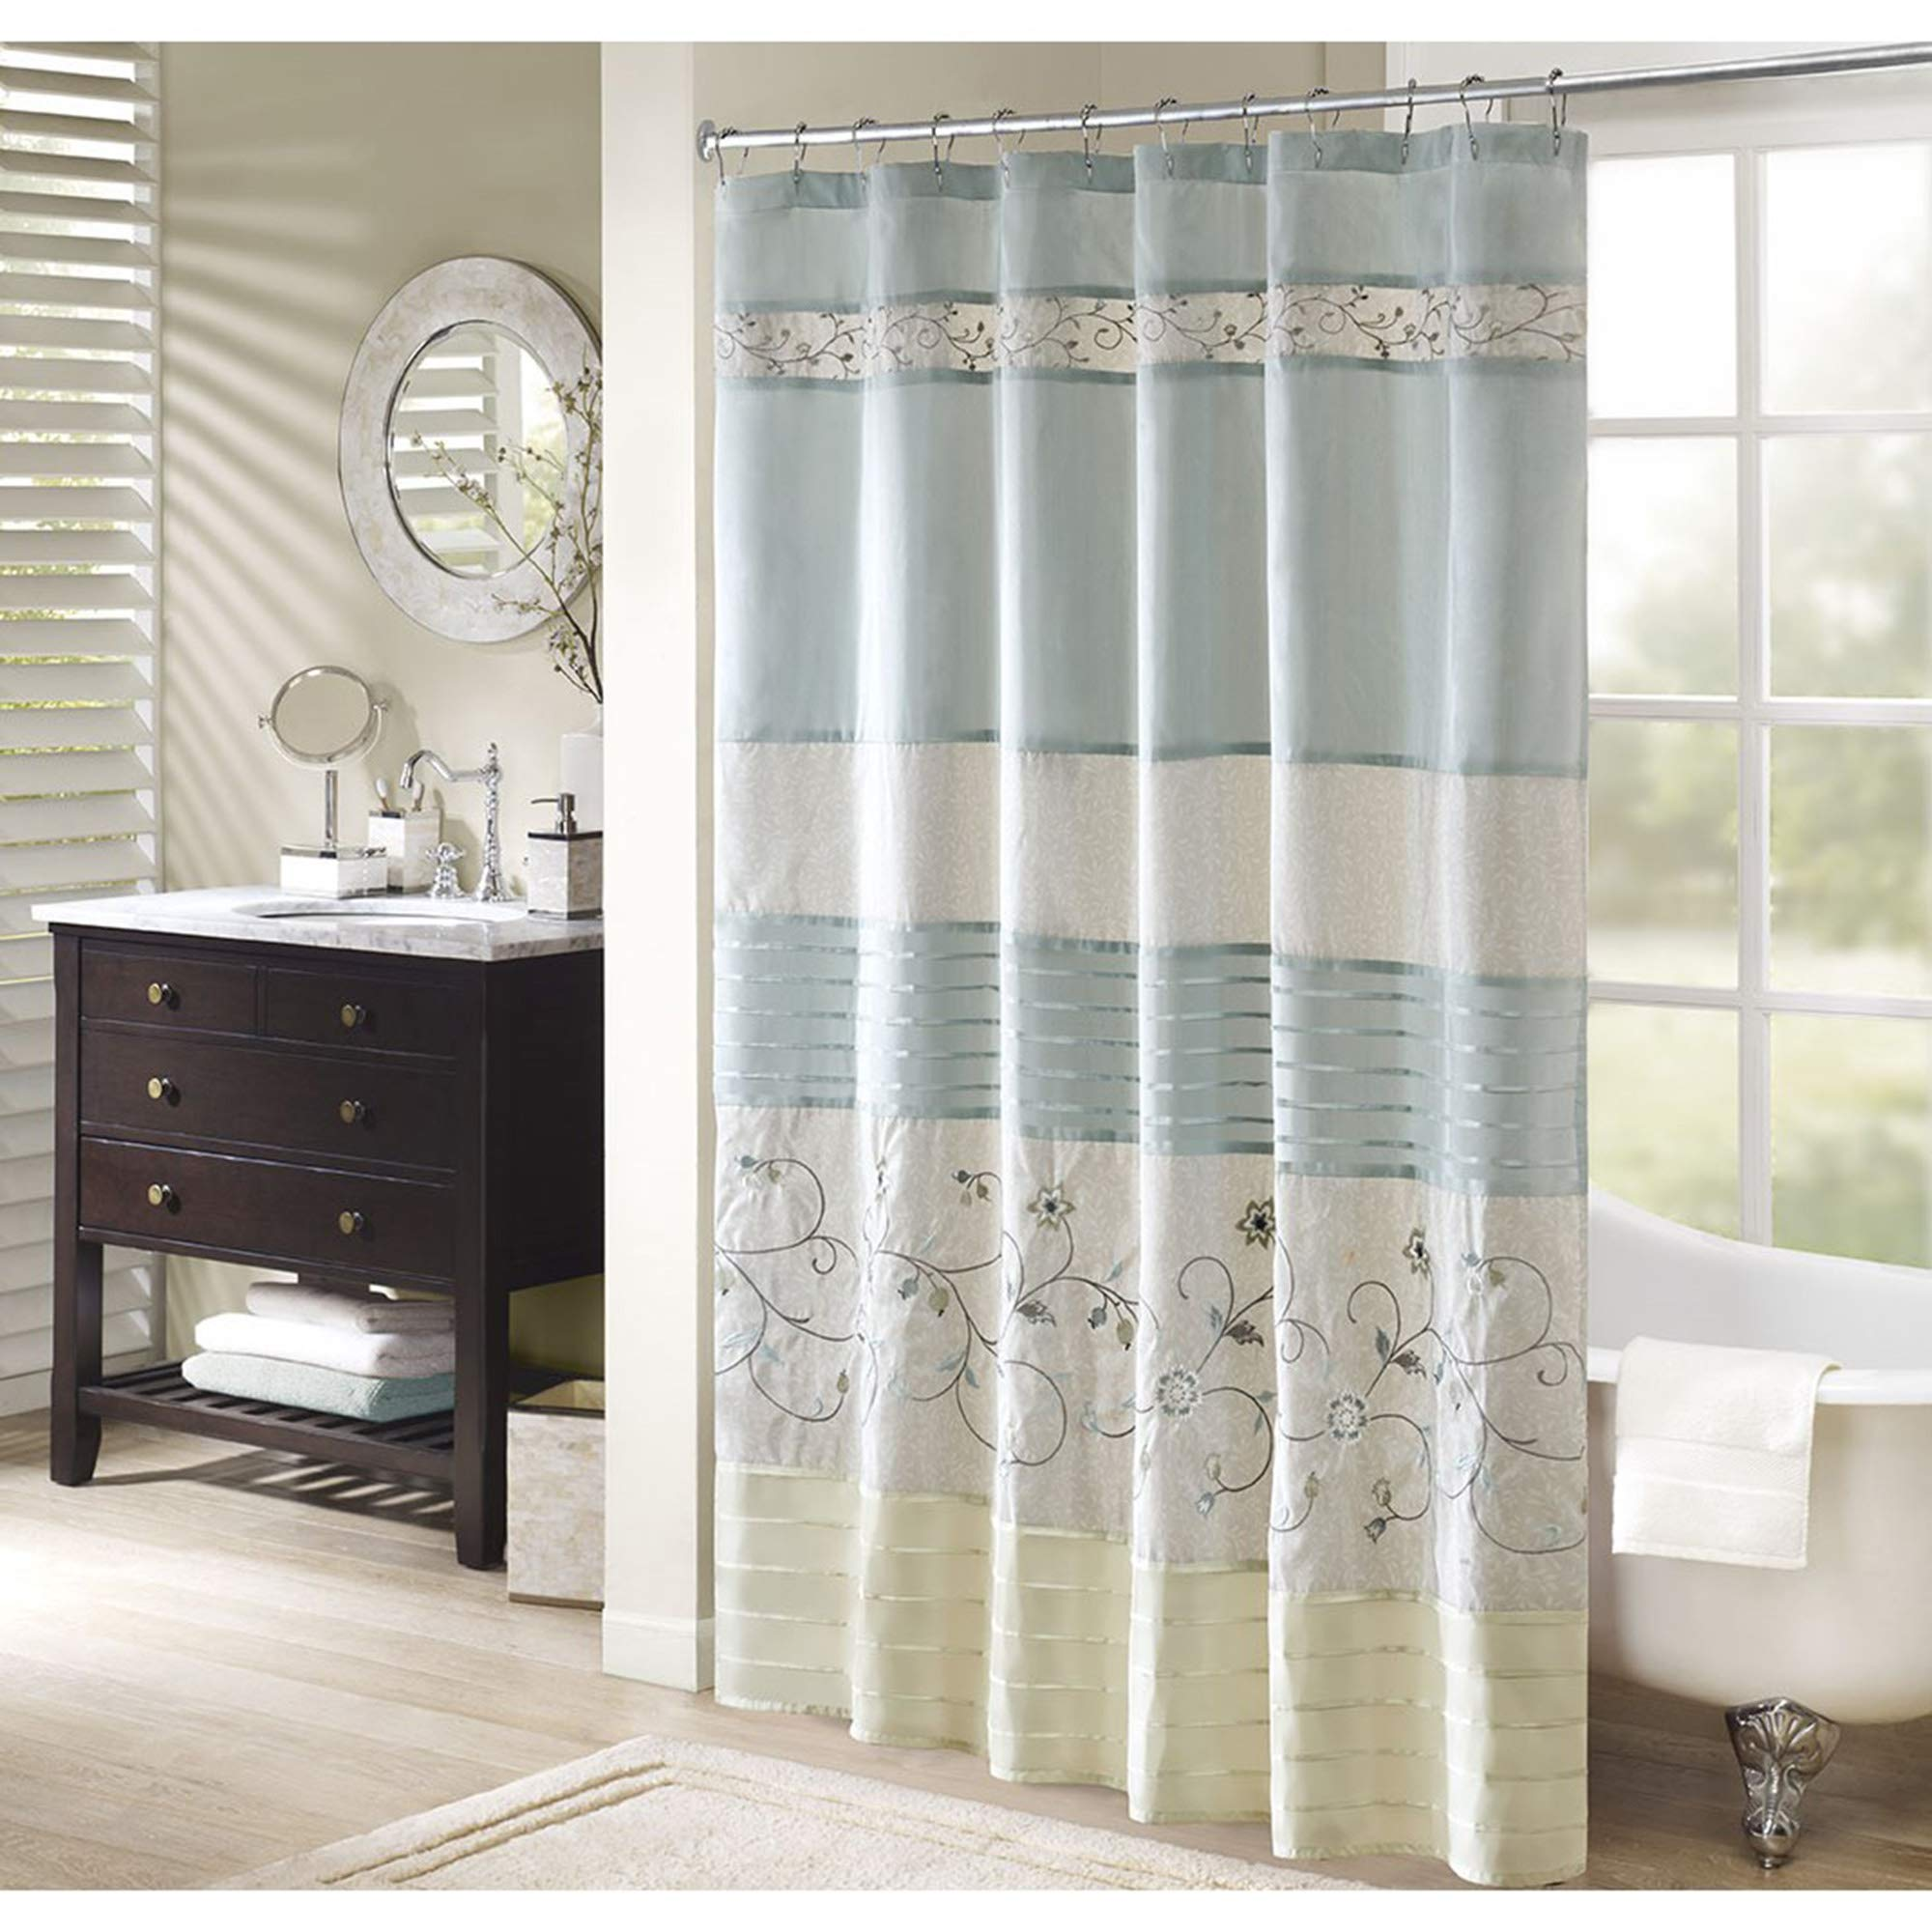 Madison Park Serene Shower Curtain, Aqua by Madison Park